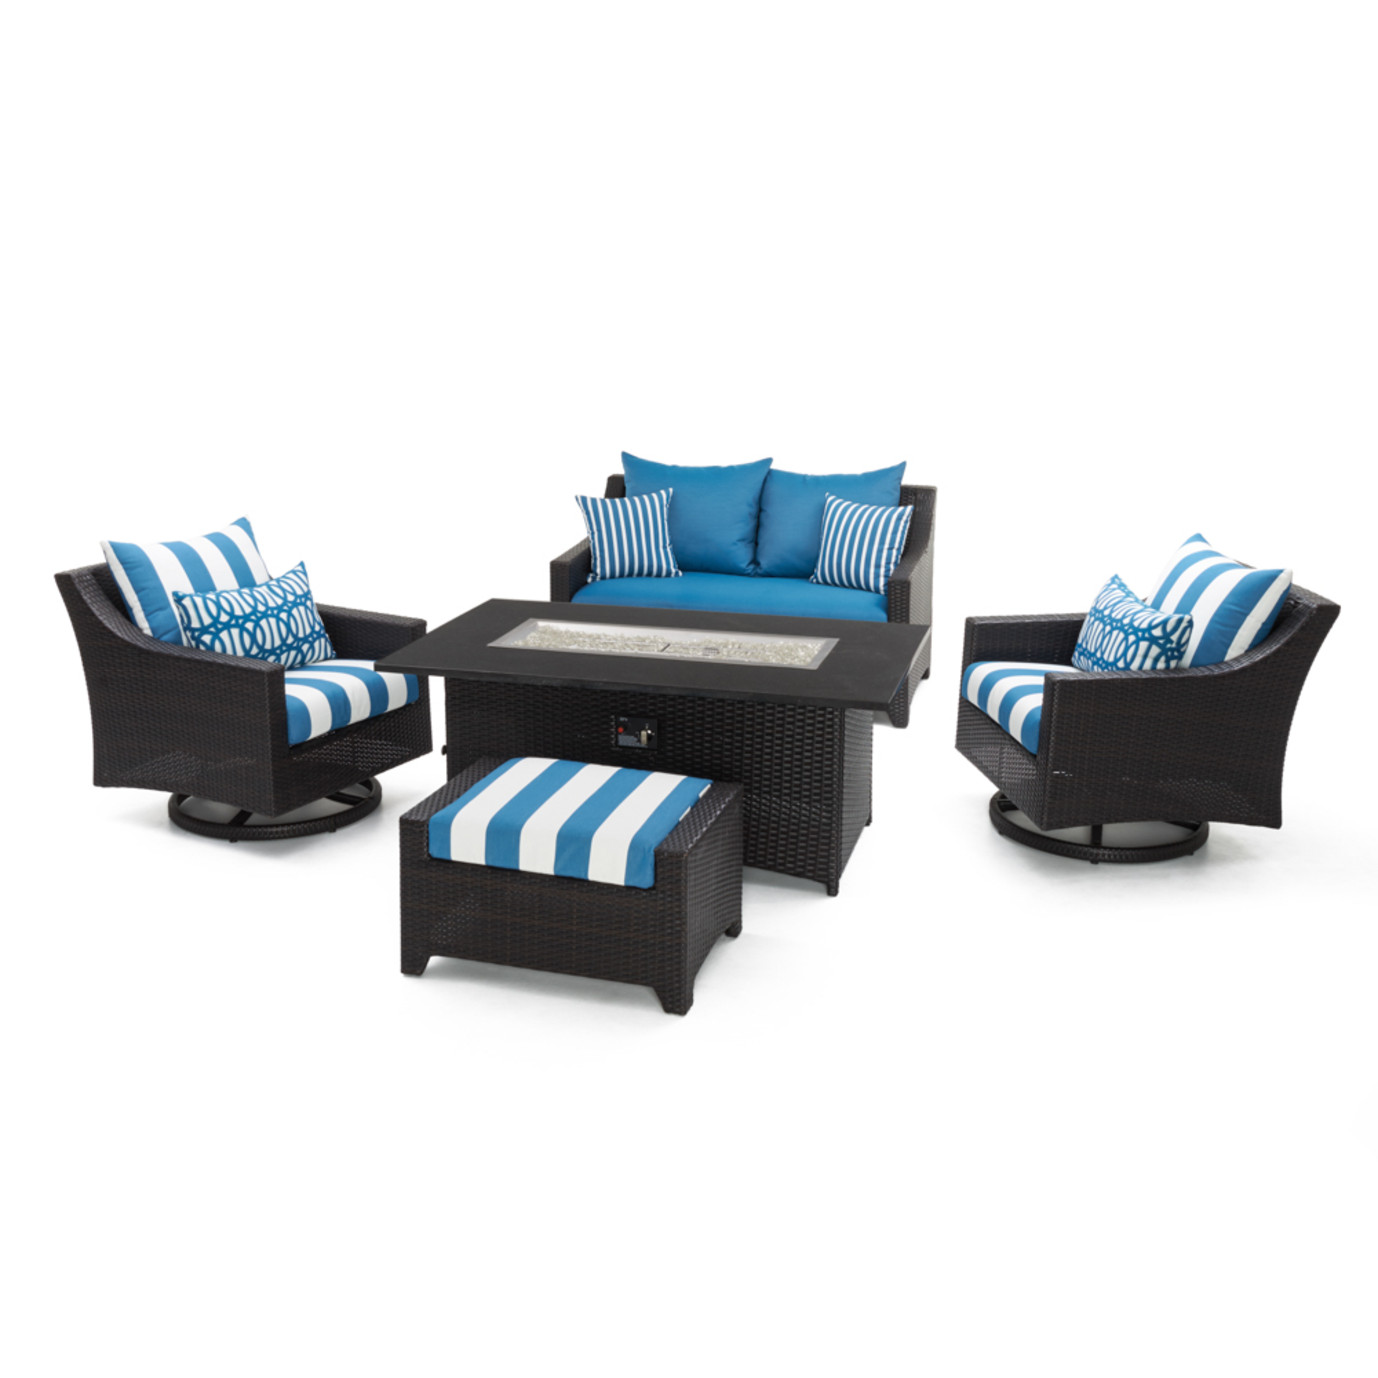 Deco™ 5pc Love & Motion Club Fire Set - Regatta Blue